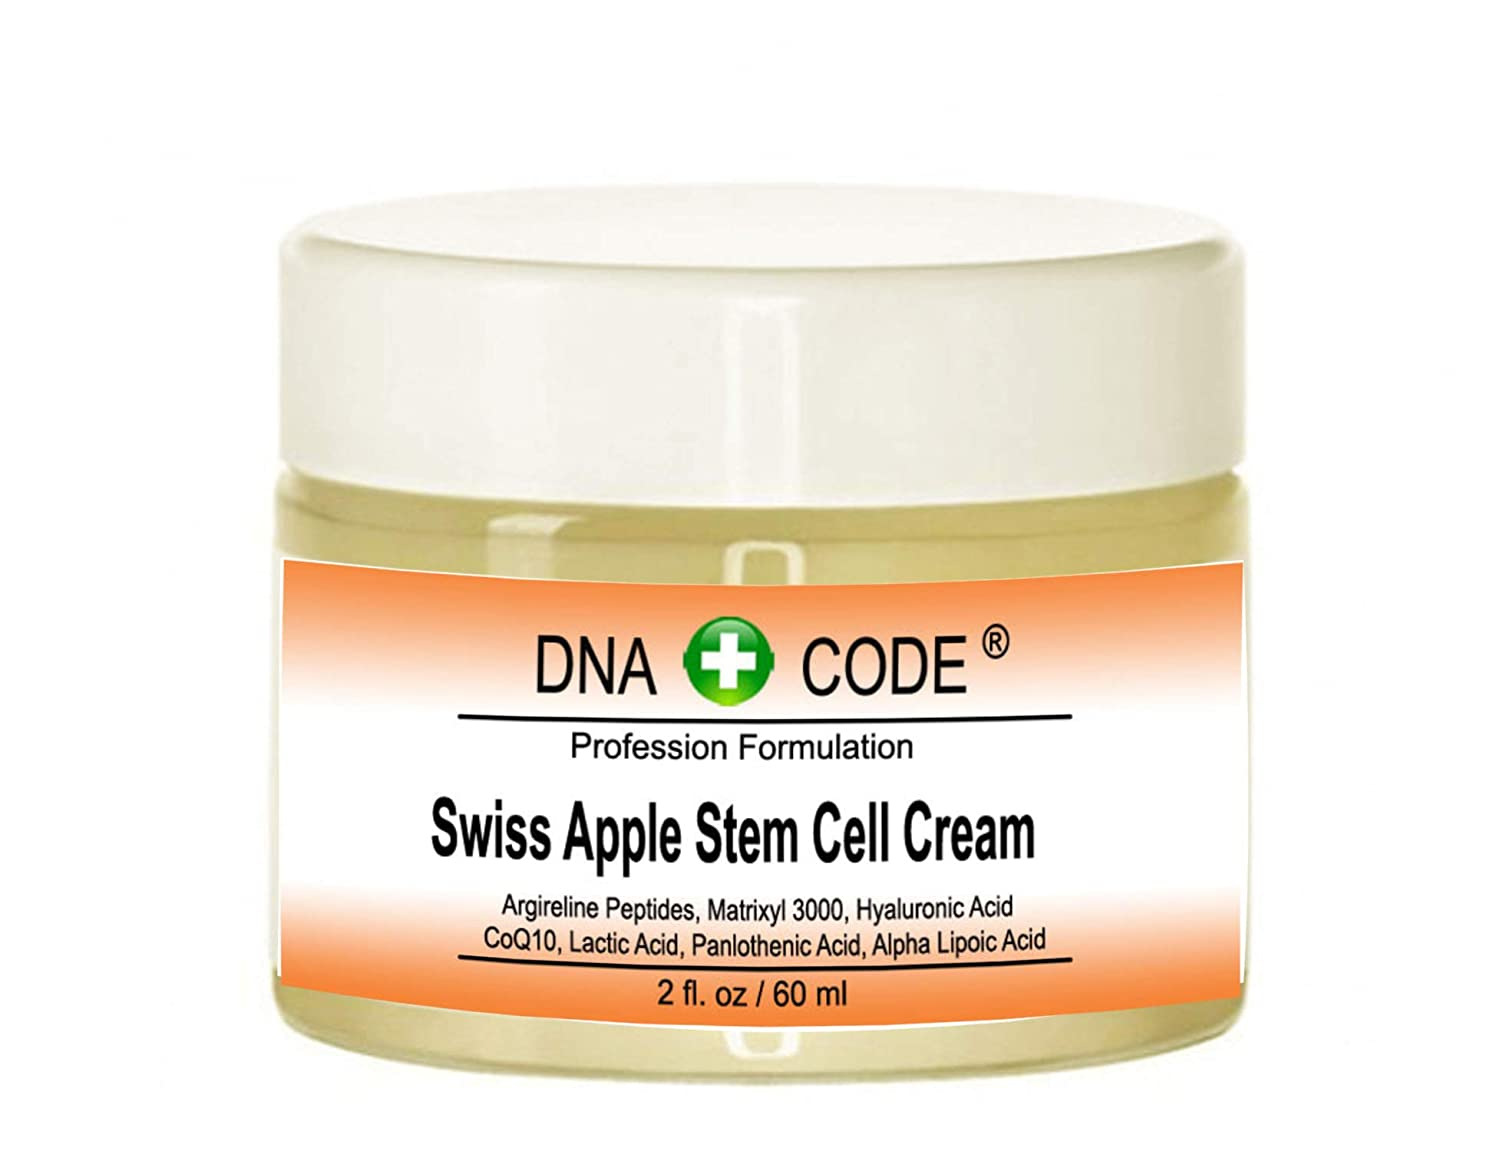 DNA Code- Swiss Apple Stem Cell Cream w/Argireline, Matrixyl 3000, Hyaluronic Acid, CoQ10. Big 2 OZ or 4 OZ